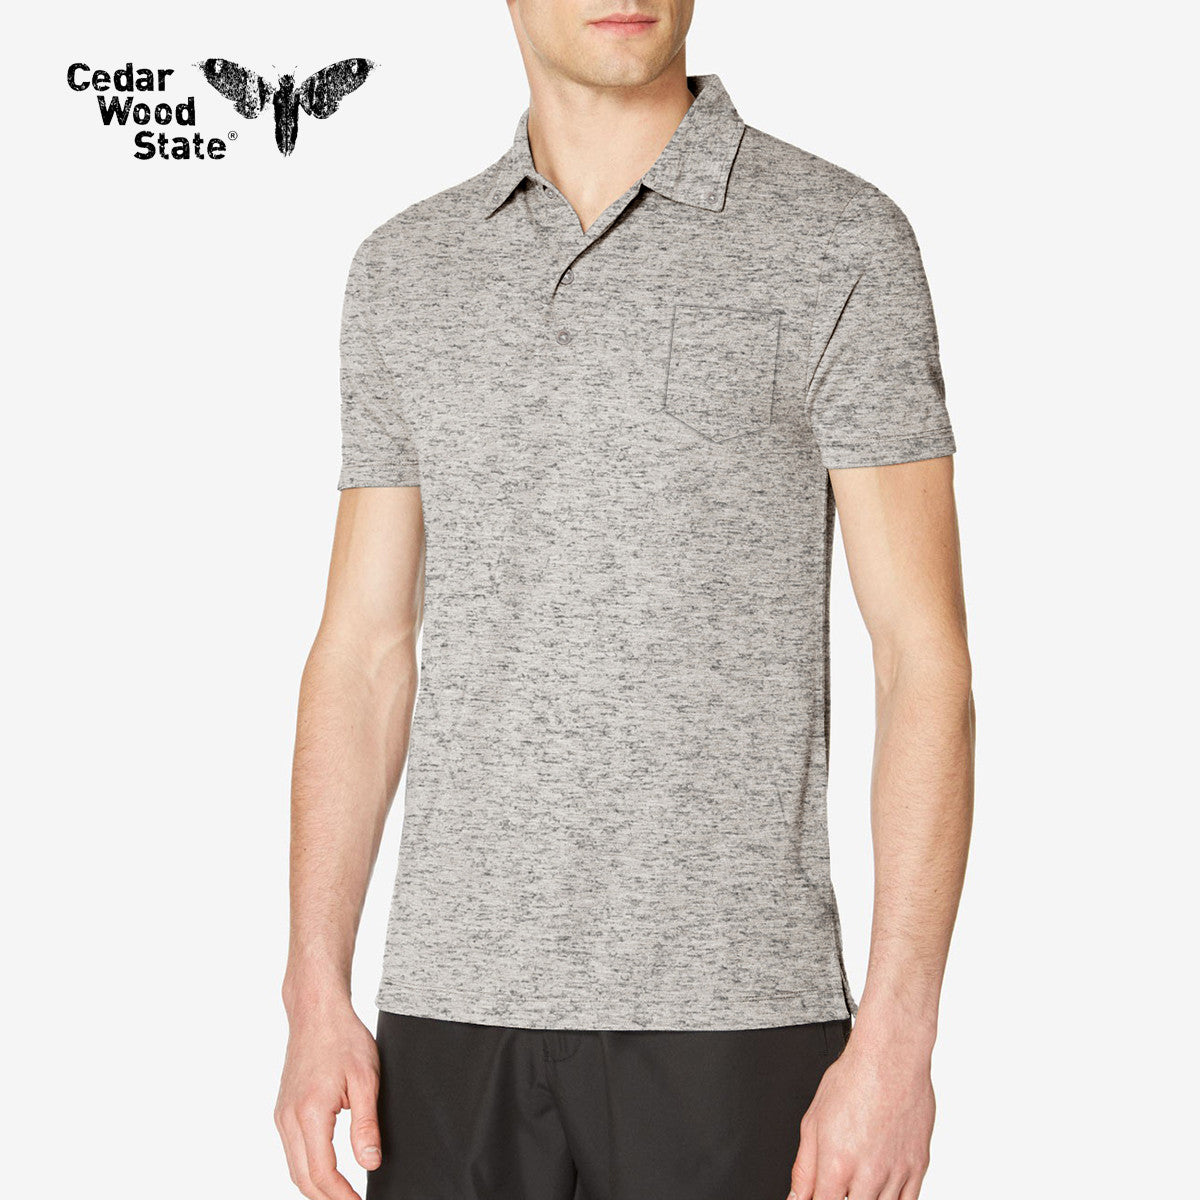 Cedarwood State Polo Shirt For Men Cut Label-Gray Melange-BE2481